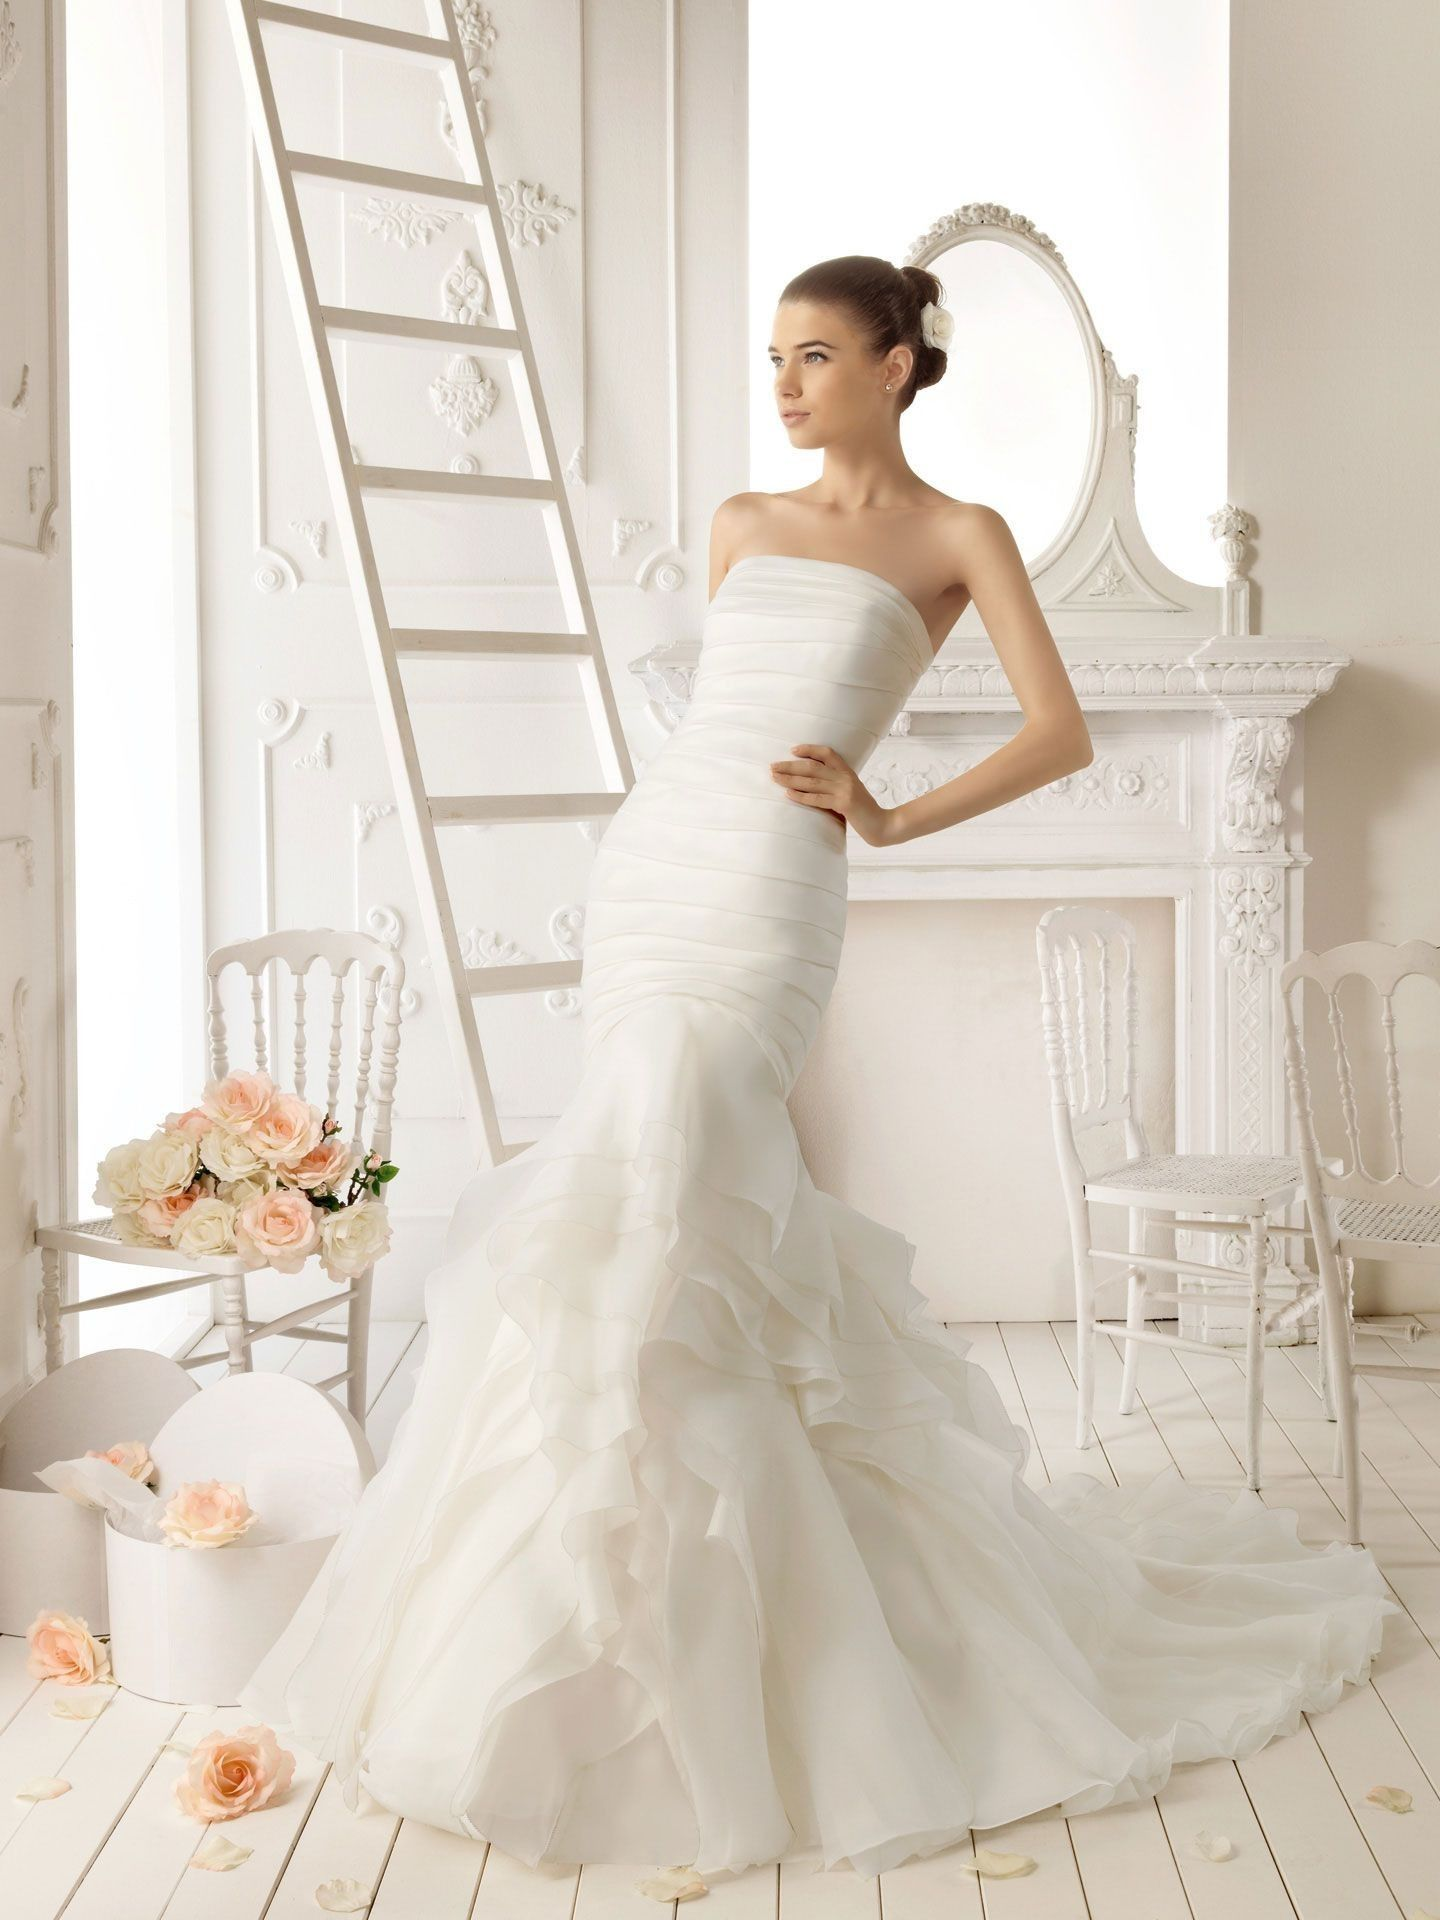 17 Best images about wedding dresses on Pinterest | Second ...